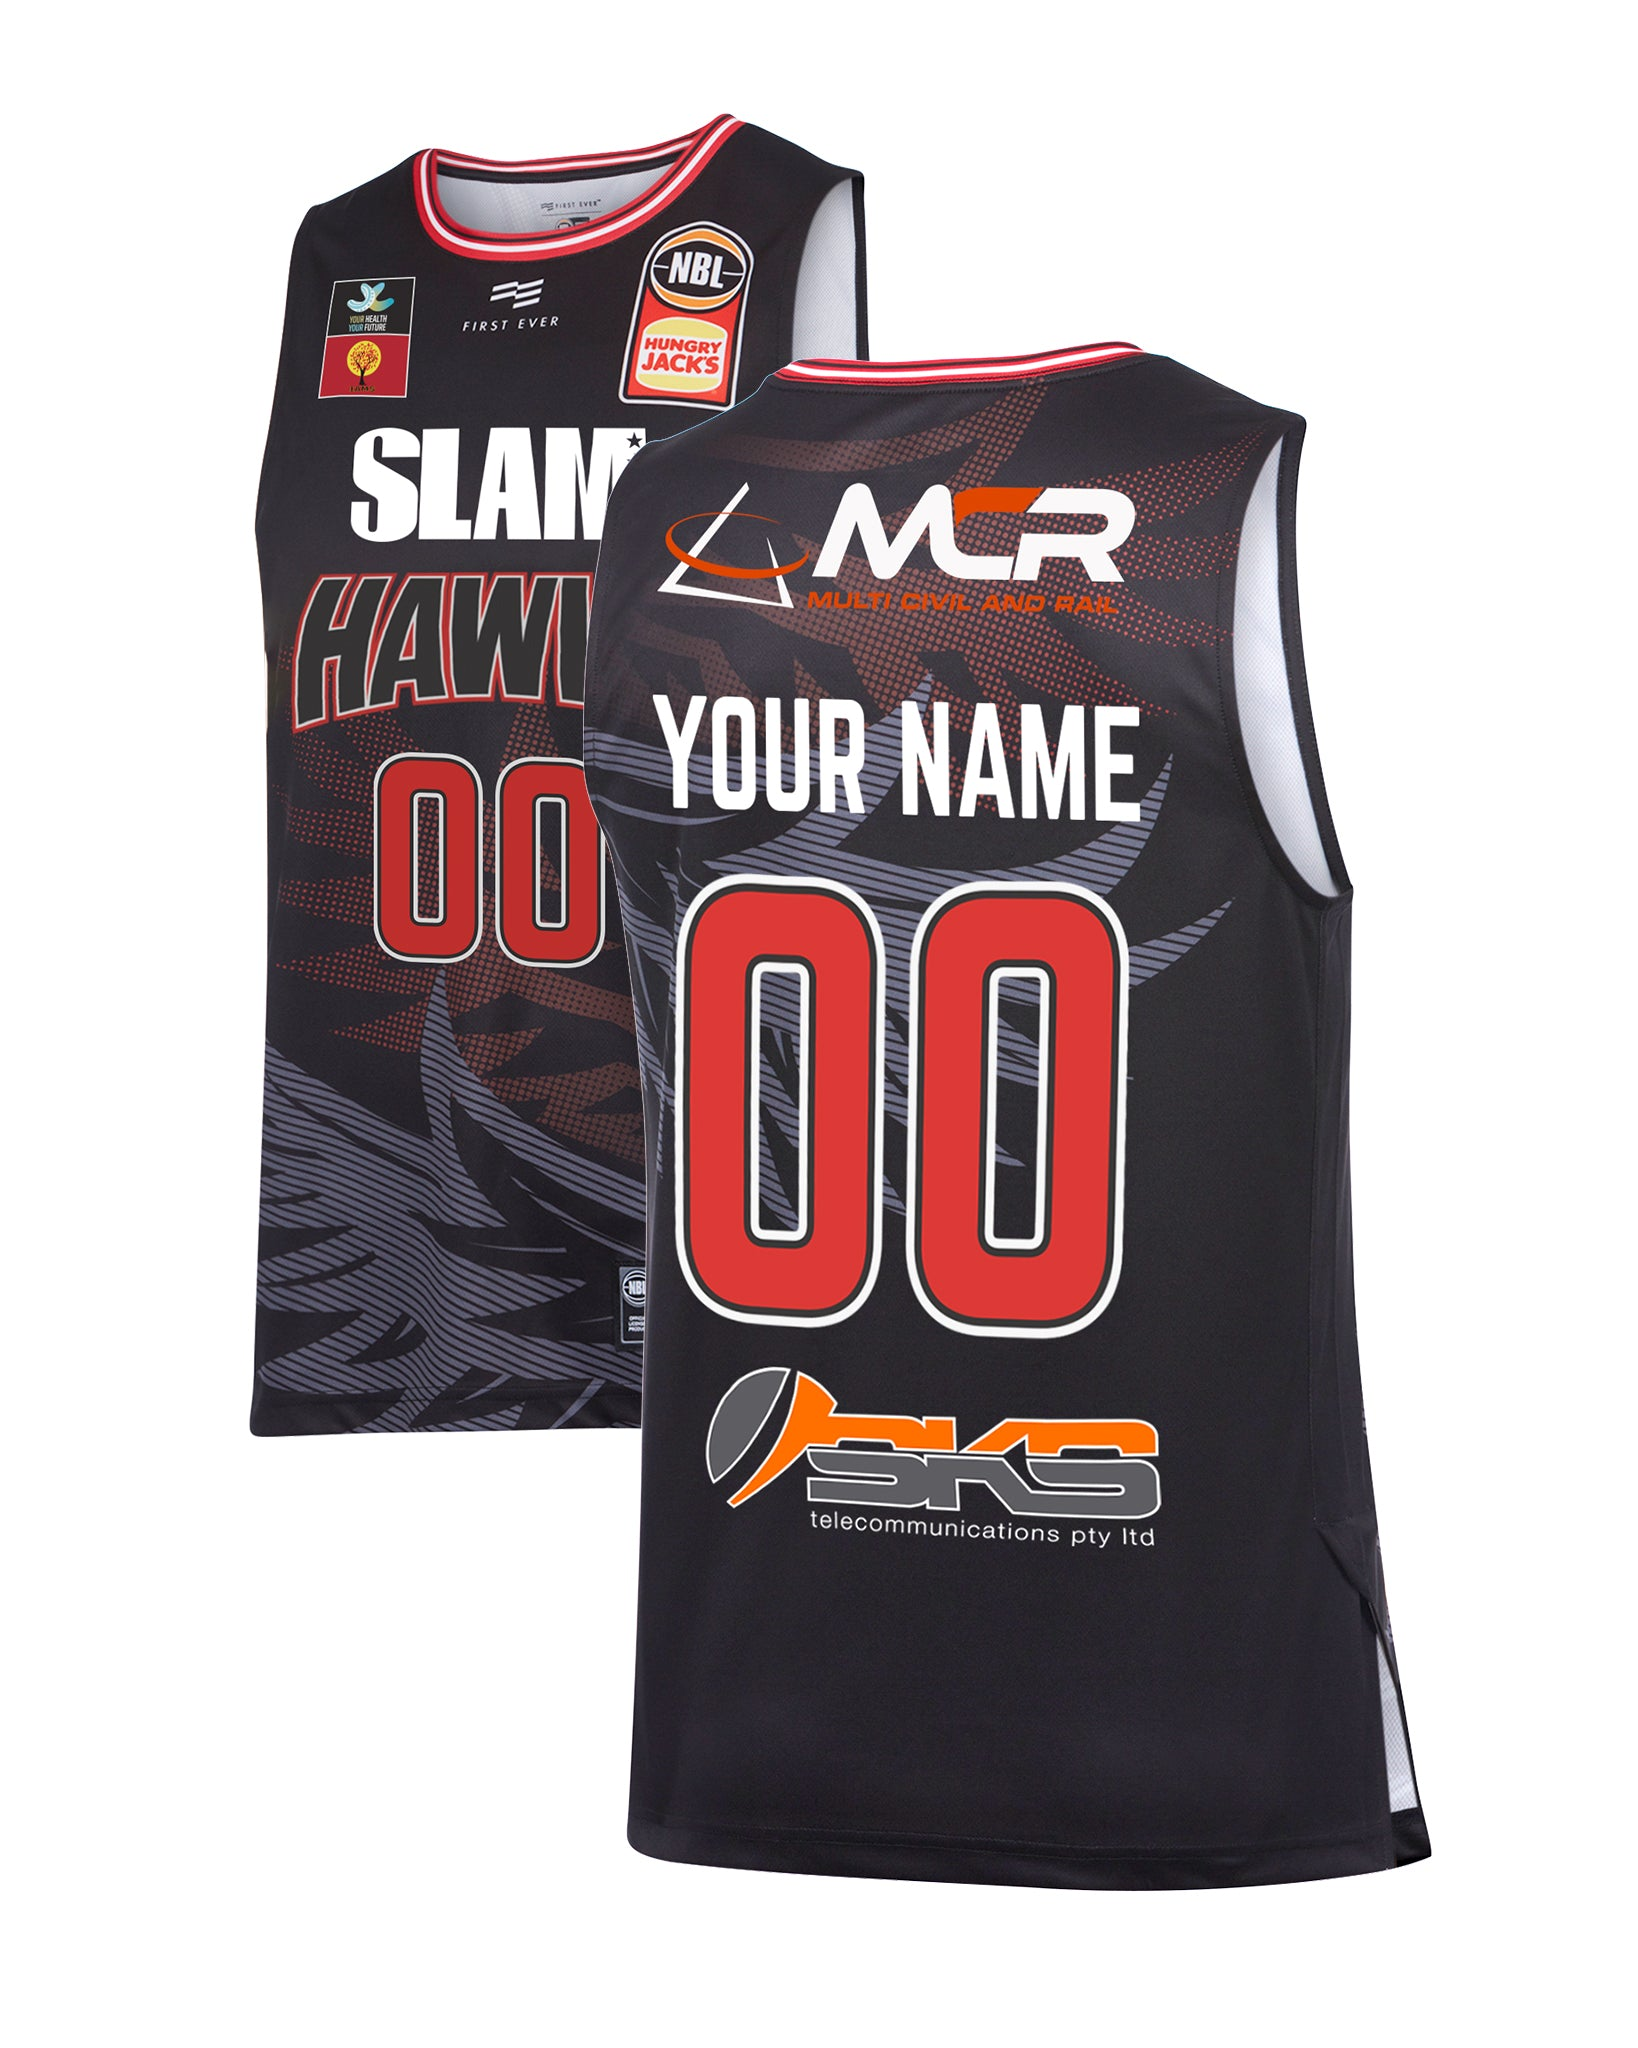 Personalised Illawarra Hawks 19/20 Authentic Home Jersey (with SLAM)